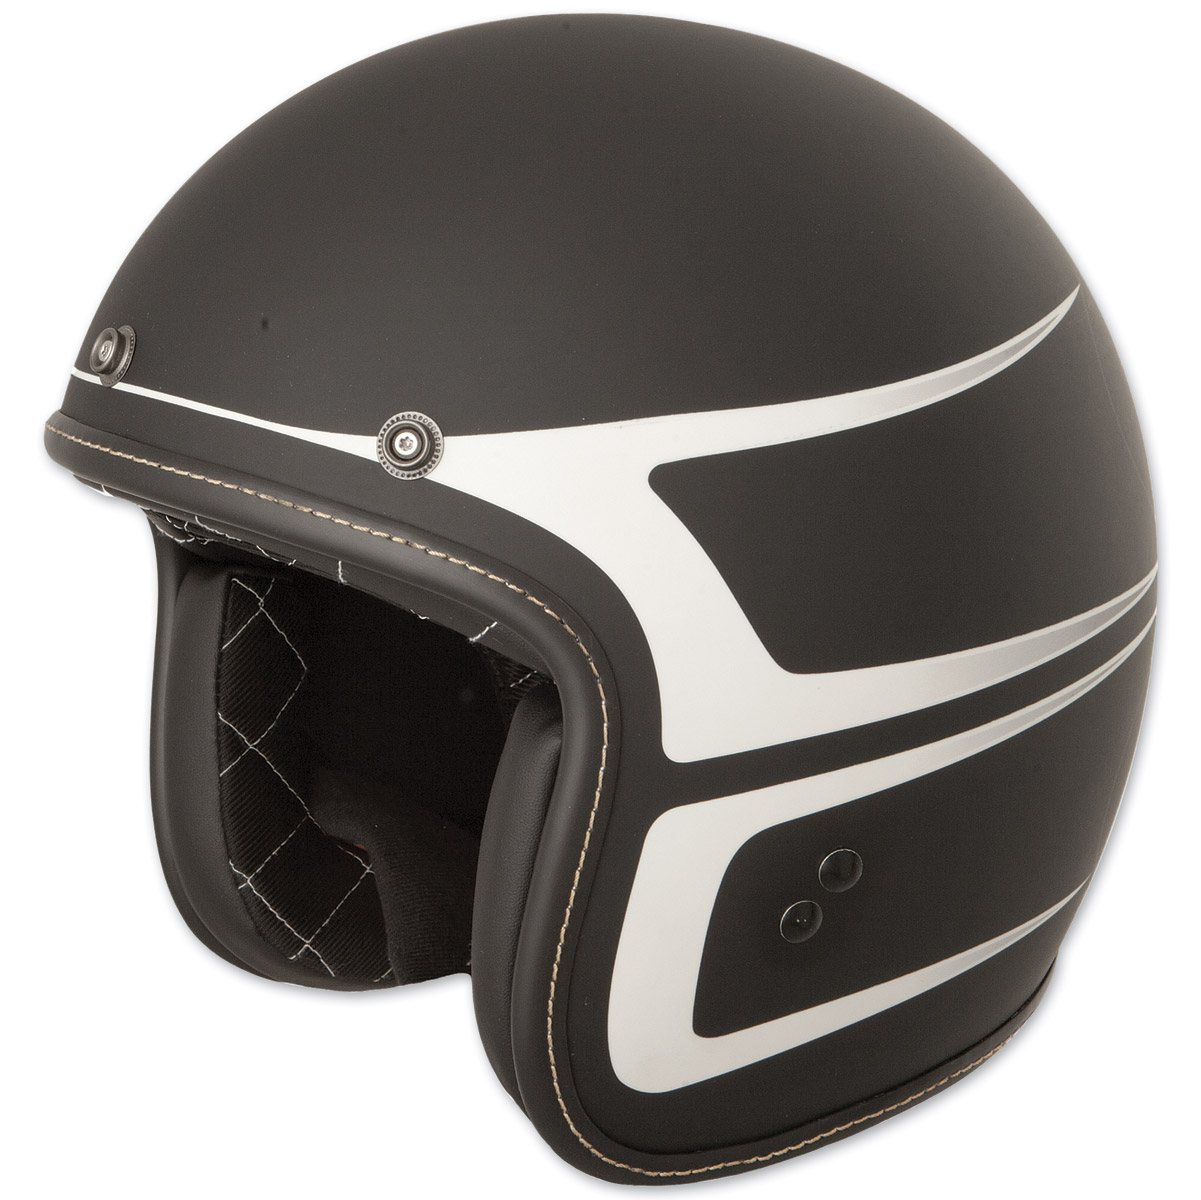 quality products catch delicate colors FLY .38 Retro Matte Black/White Scallop Open Face Helmet